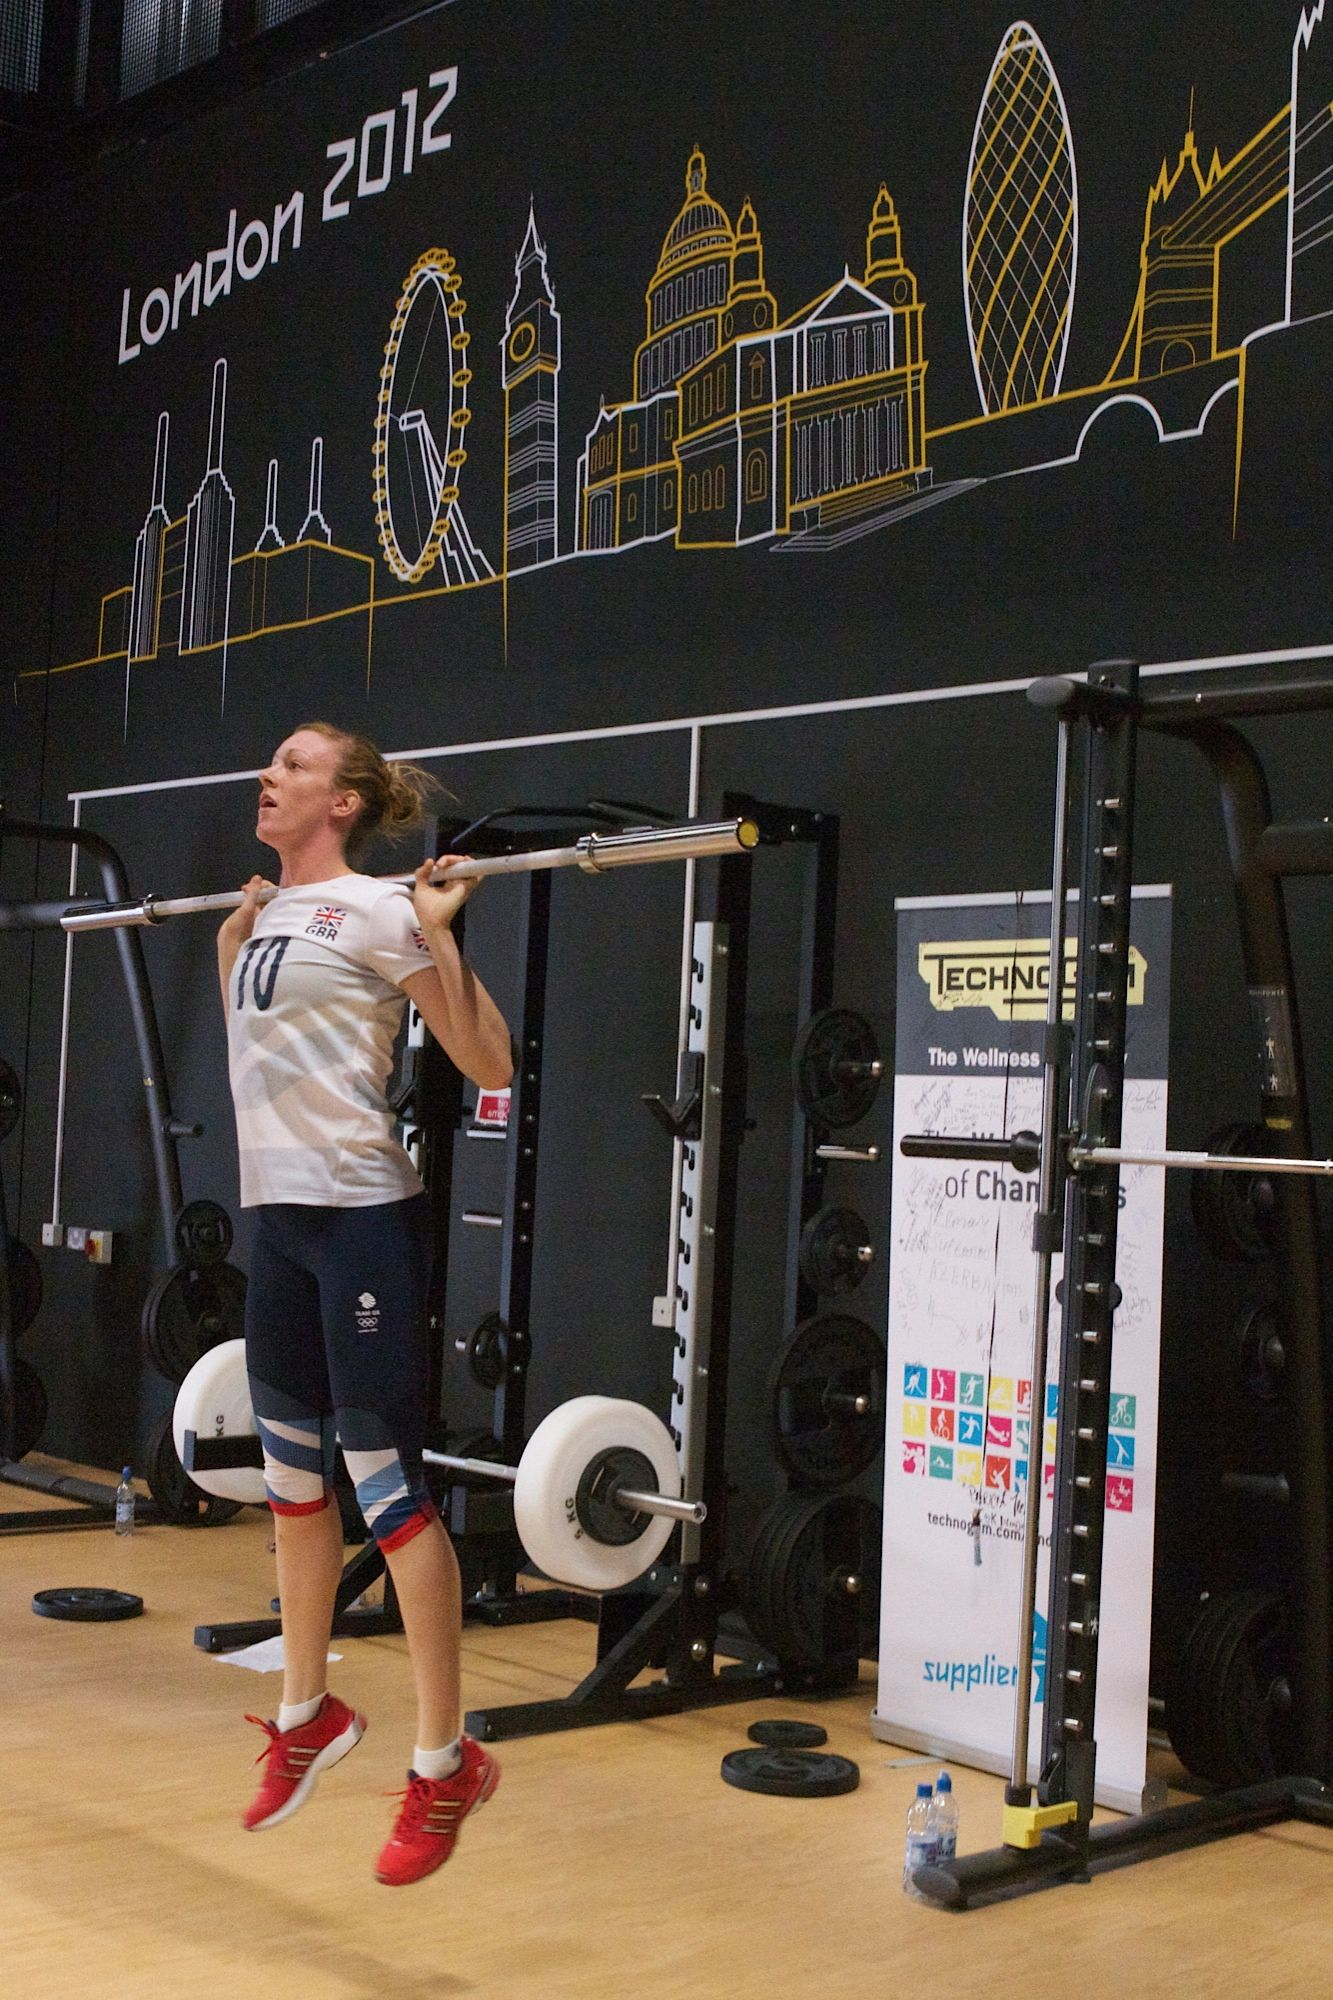 Lynne Beattie UK Volleyball Trainer is training in the